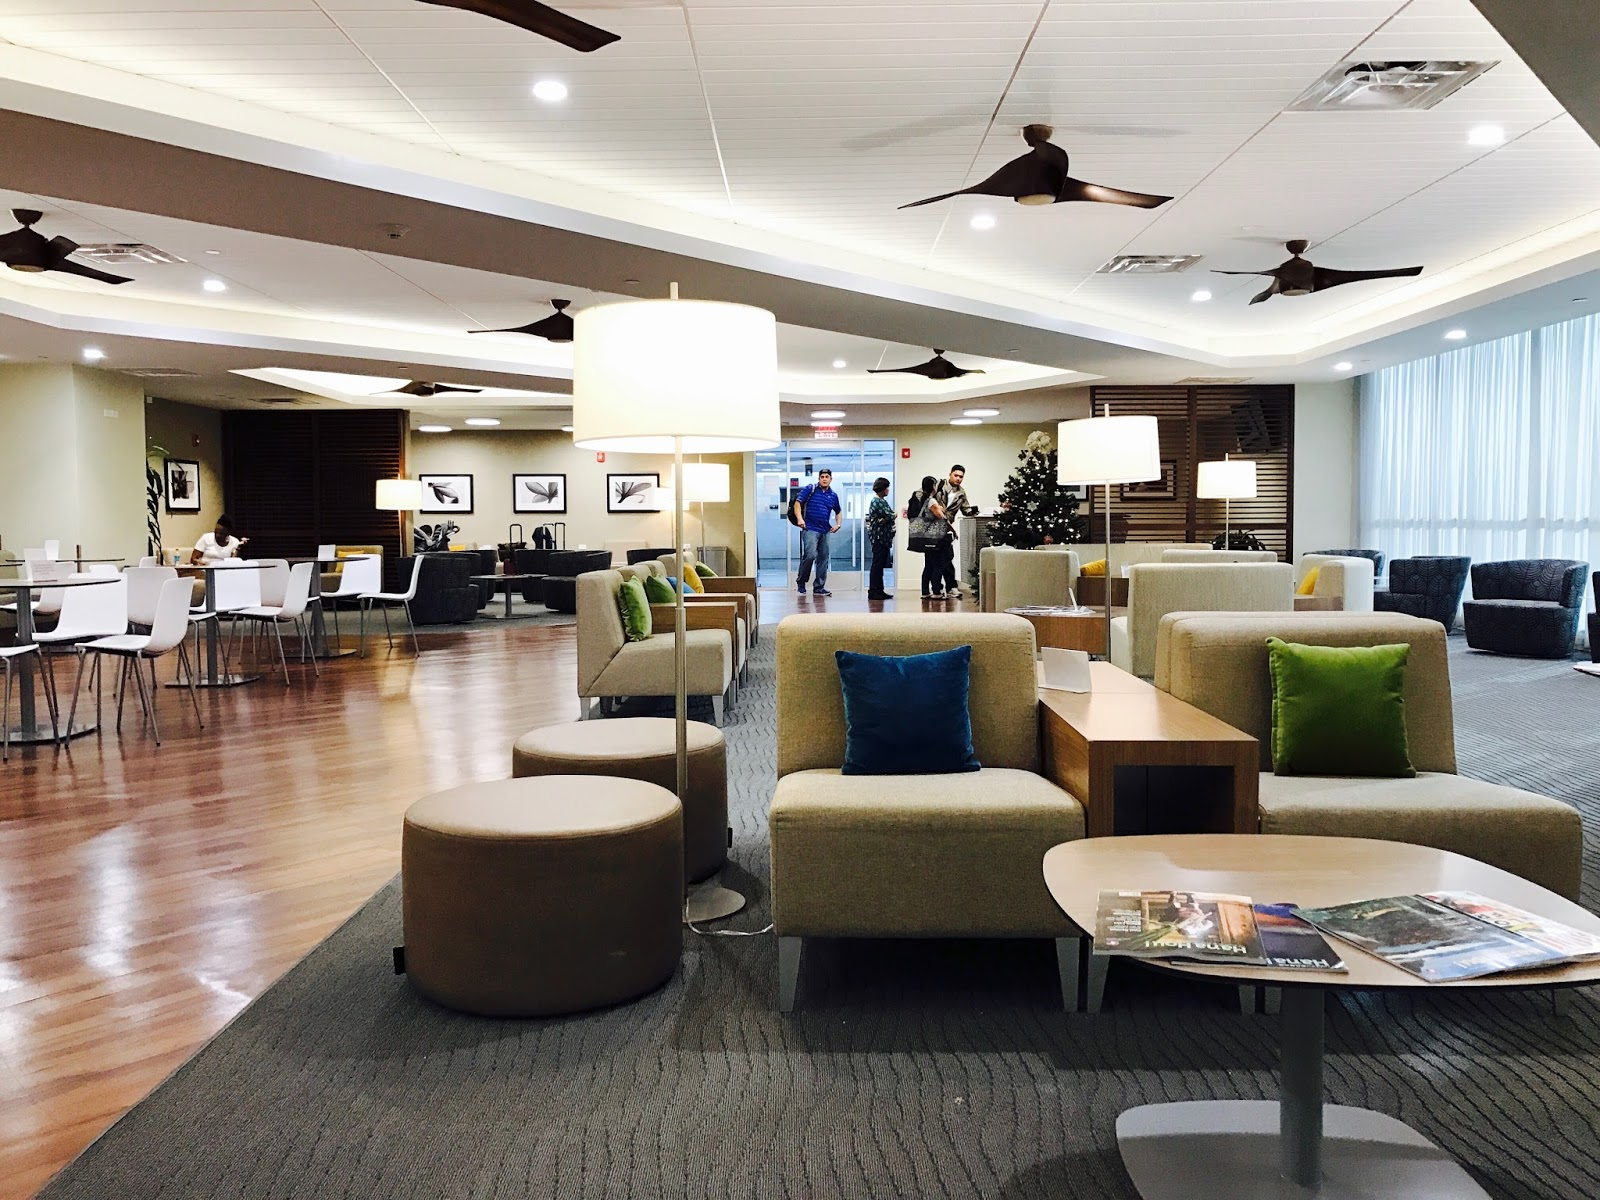 Relax At Priority Pass Participating Lounge In Honolulu Airport While  Waiting For Inter Island Flight